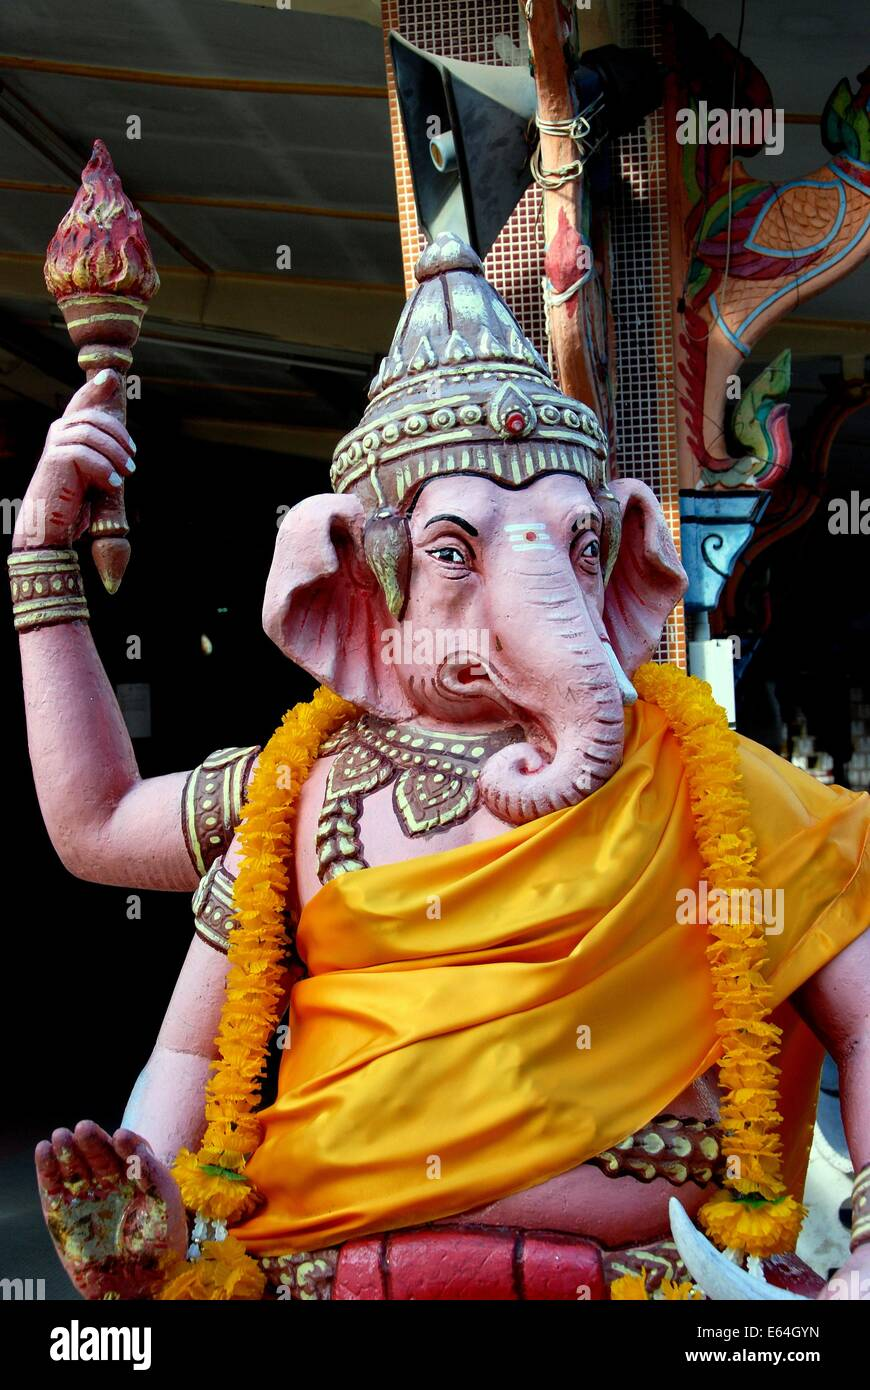 GEORGETOWN, MALAYSIA: A statue of Lord Ganesha, the Hindu Elephant God of Knowledge, at Thai Wat Buppharam Stock Photo